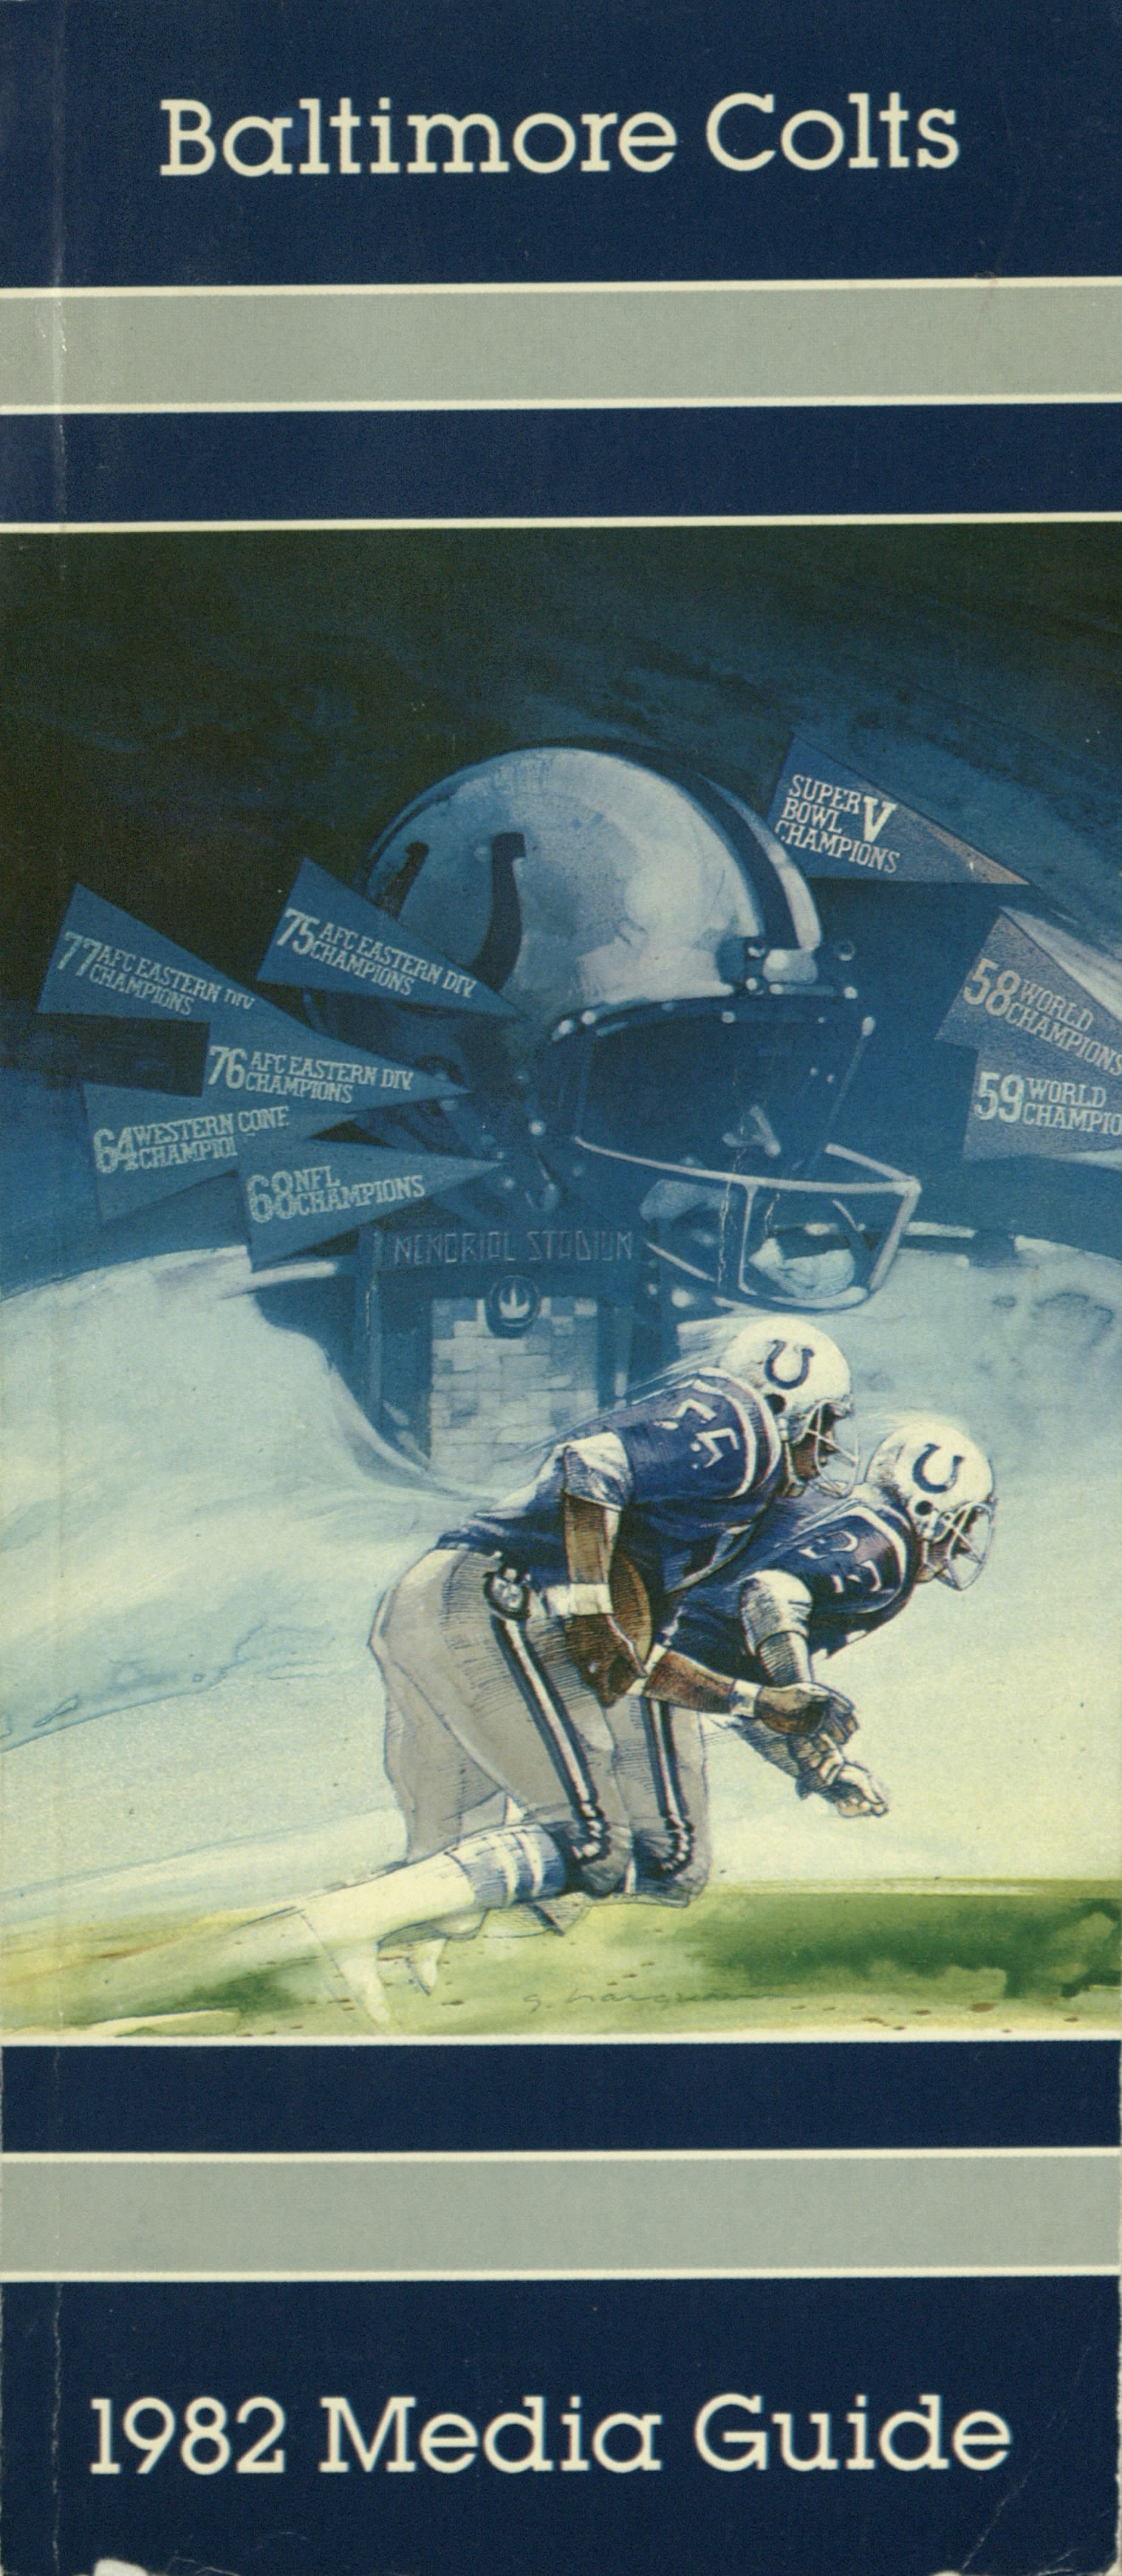 COLTS_1982_Cover